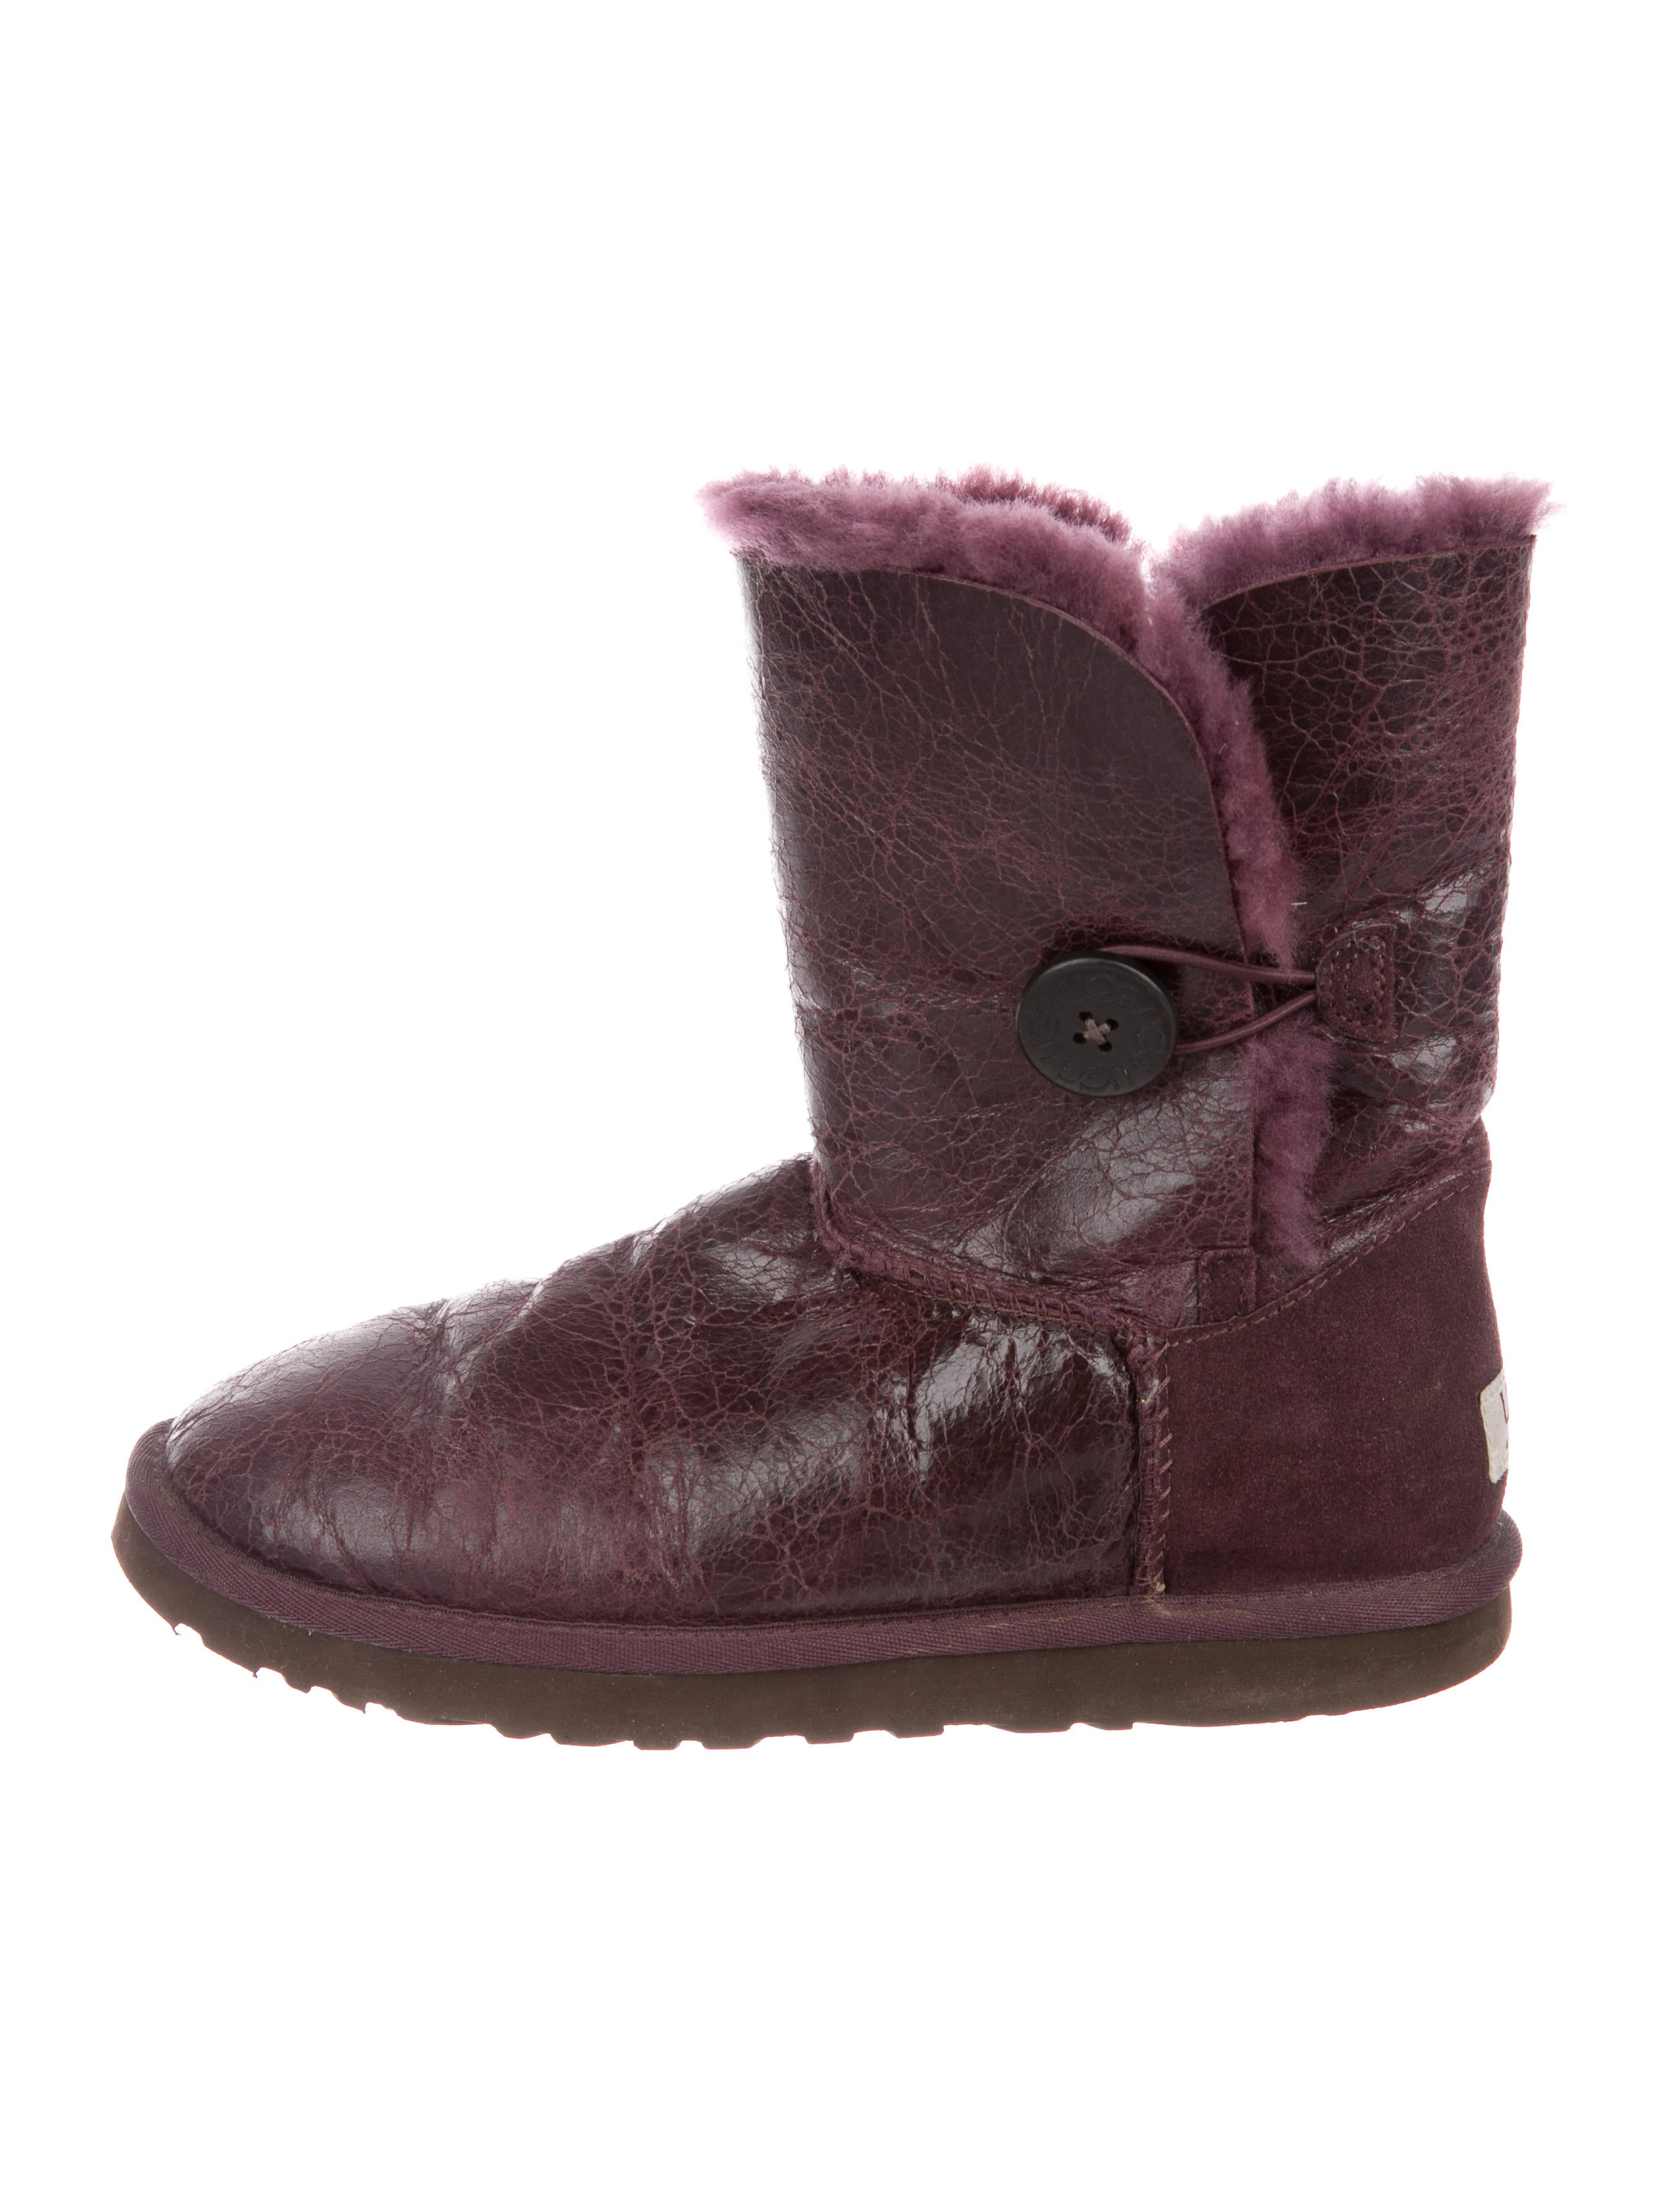 sale 2014 new cheap extremely UGG Australia Crackled Leather Classic Boots discount pay with paypal CRbqG4C8l